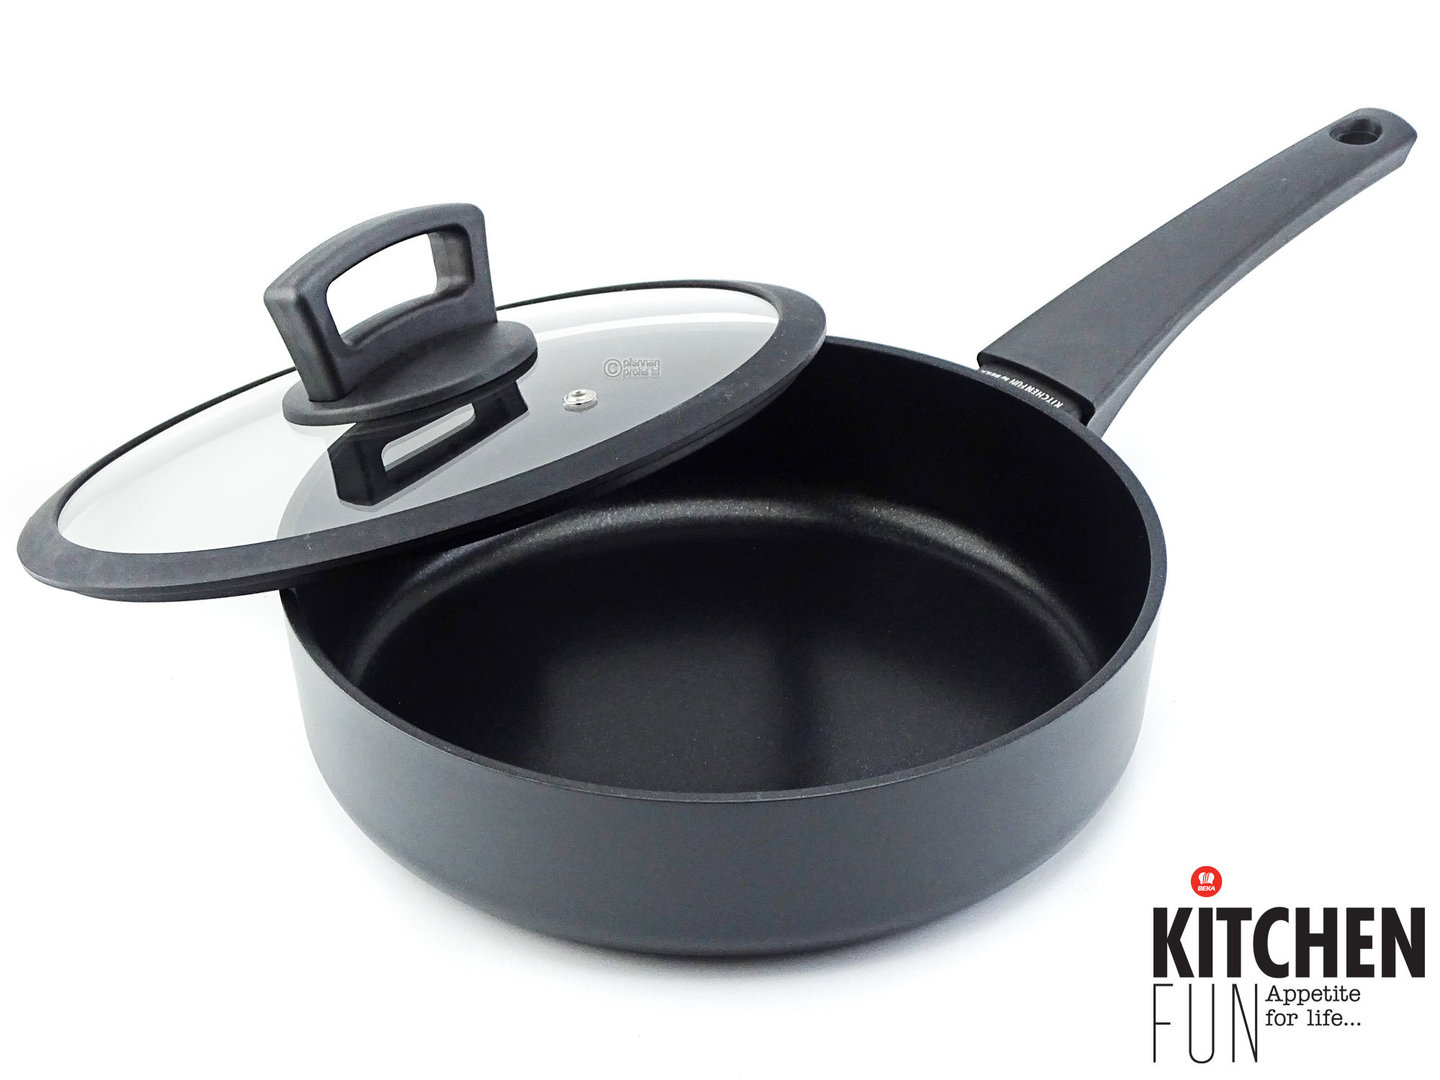 KITCHEN FUN non-stick deep frypan TWIST 24 cm with glass lid